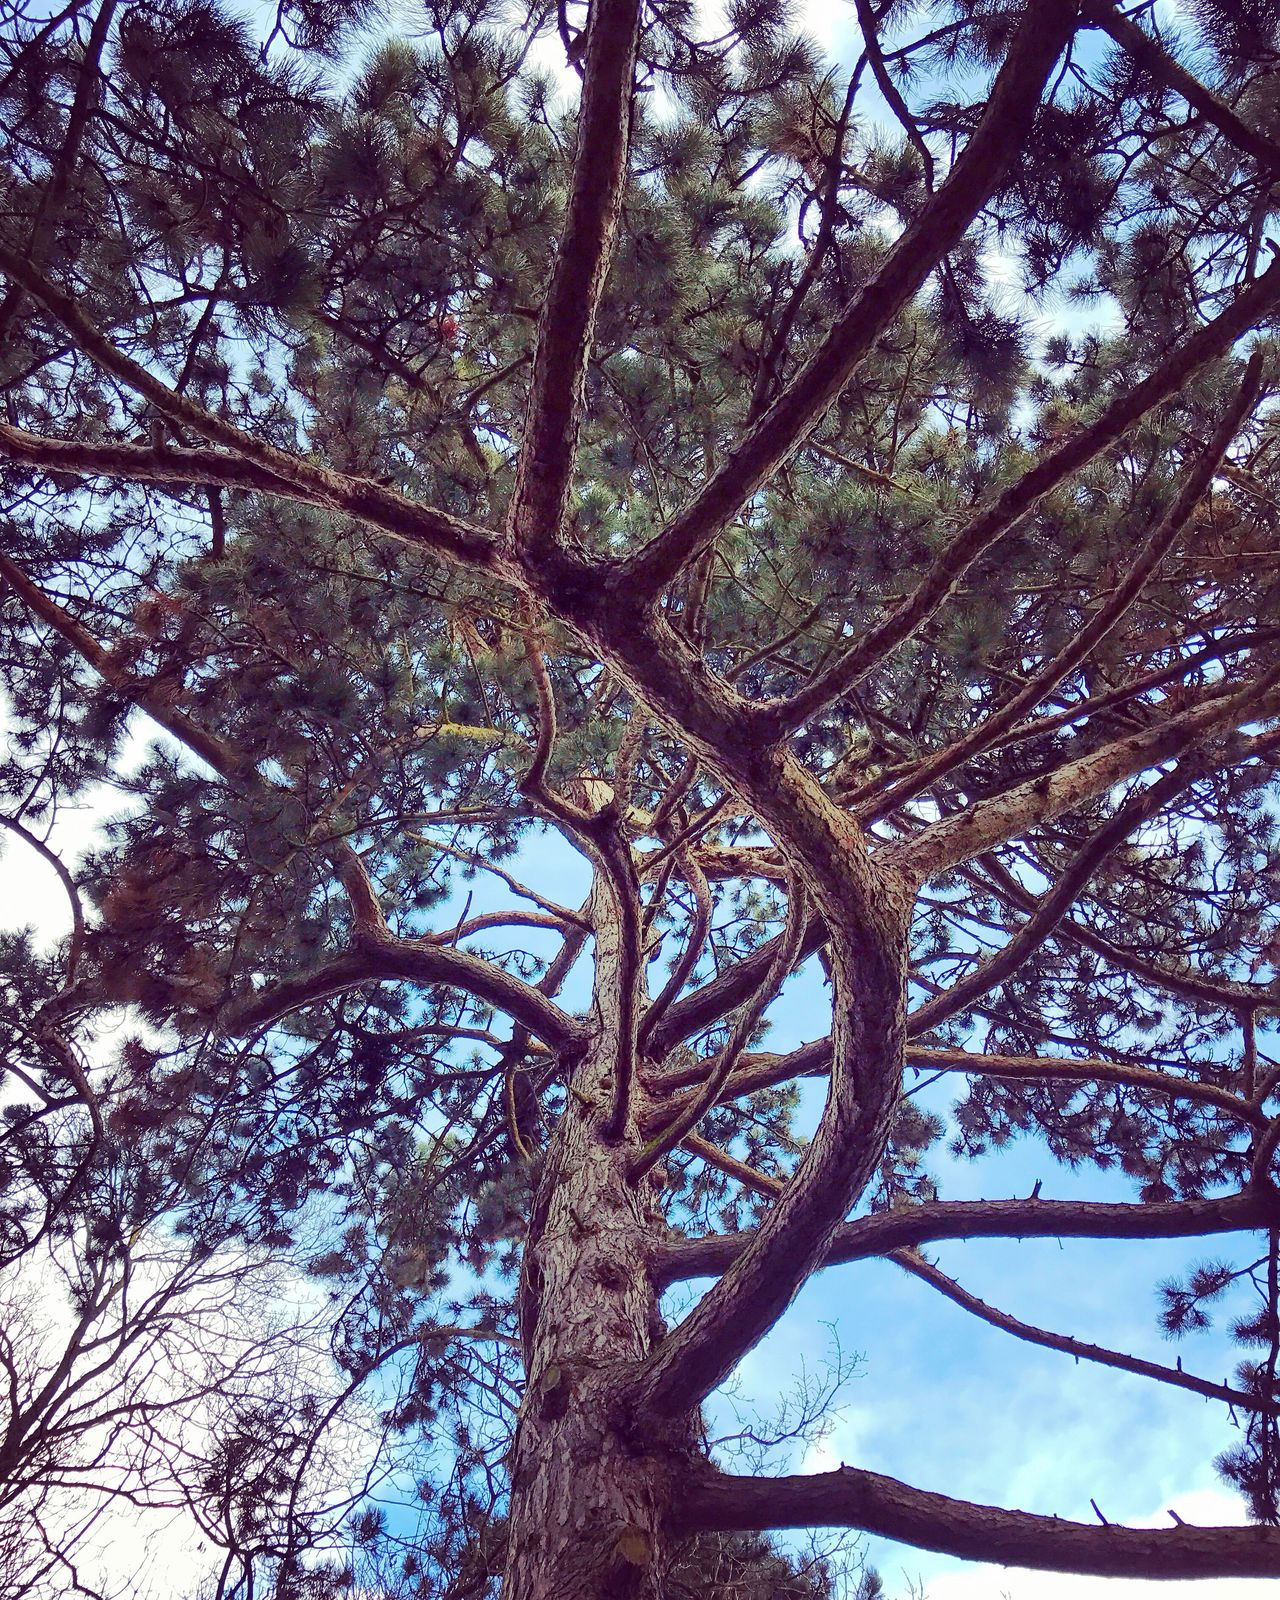 The old fir with the beautiful curves. Tree Nature Low Angle View Branch Beauty In Nature Environment No People Forest Outdoors Tranquility Day Sky Fir Evergreen Evergreen Tree Curves